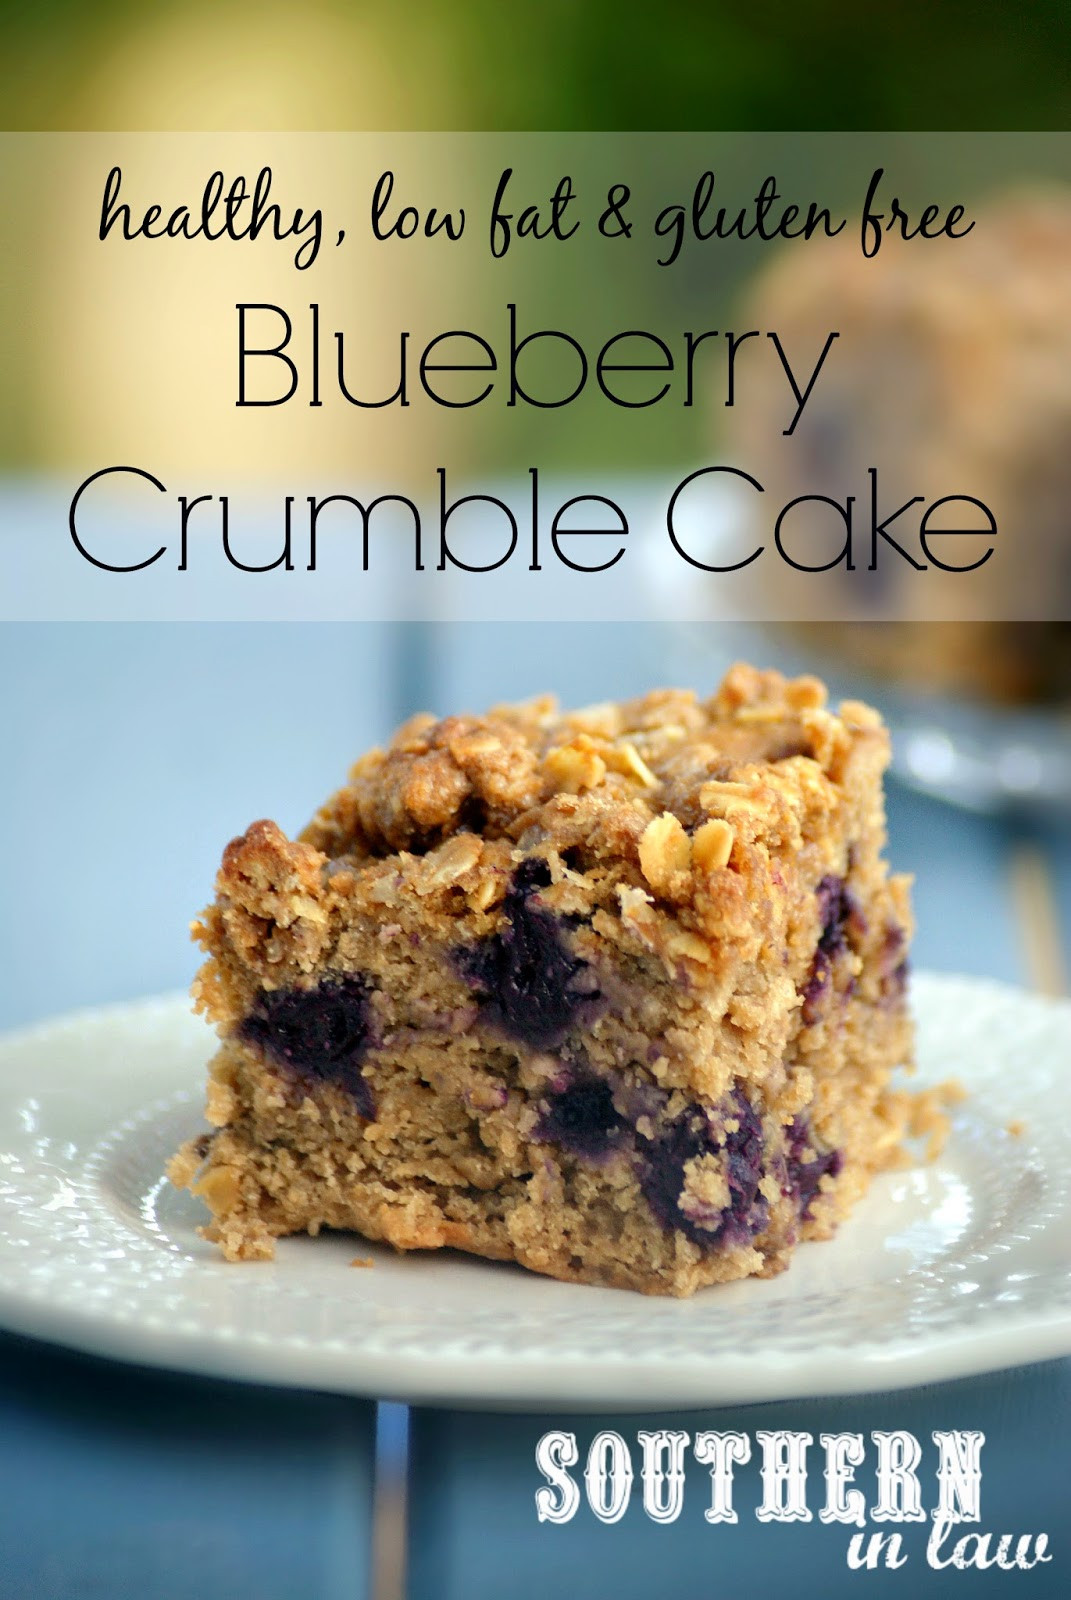 Healthy Dairy Free Recipes  Southern In Law Recipe Healthy Blueberry Crumble Cake